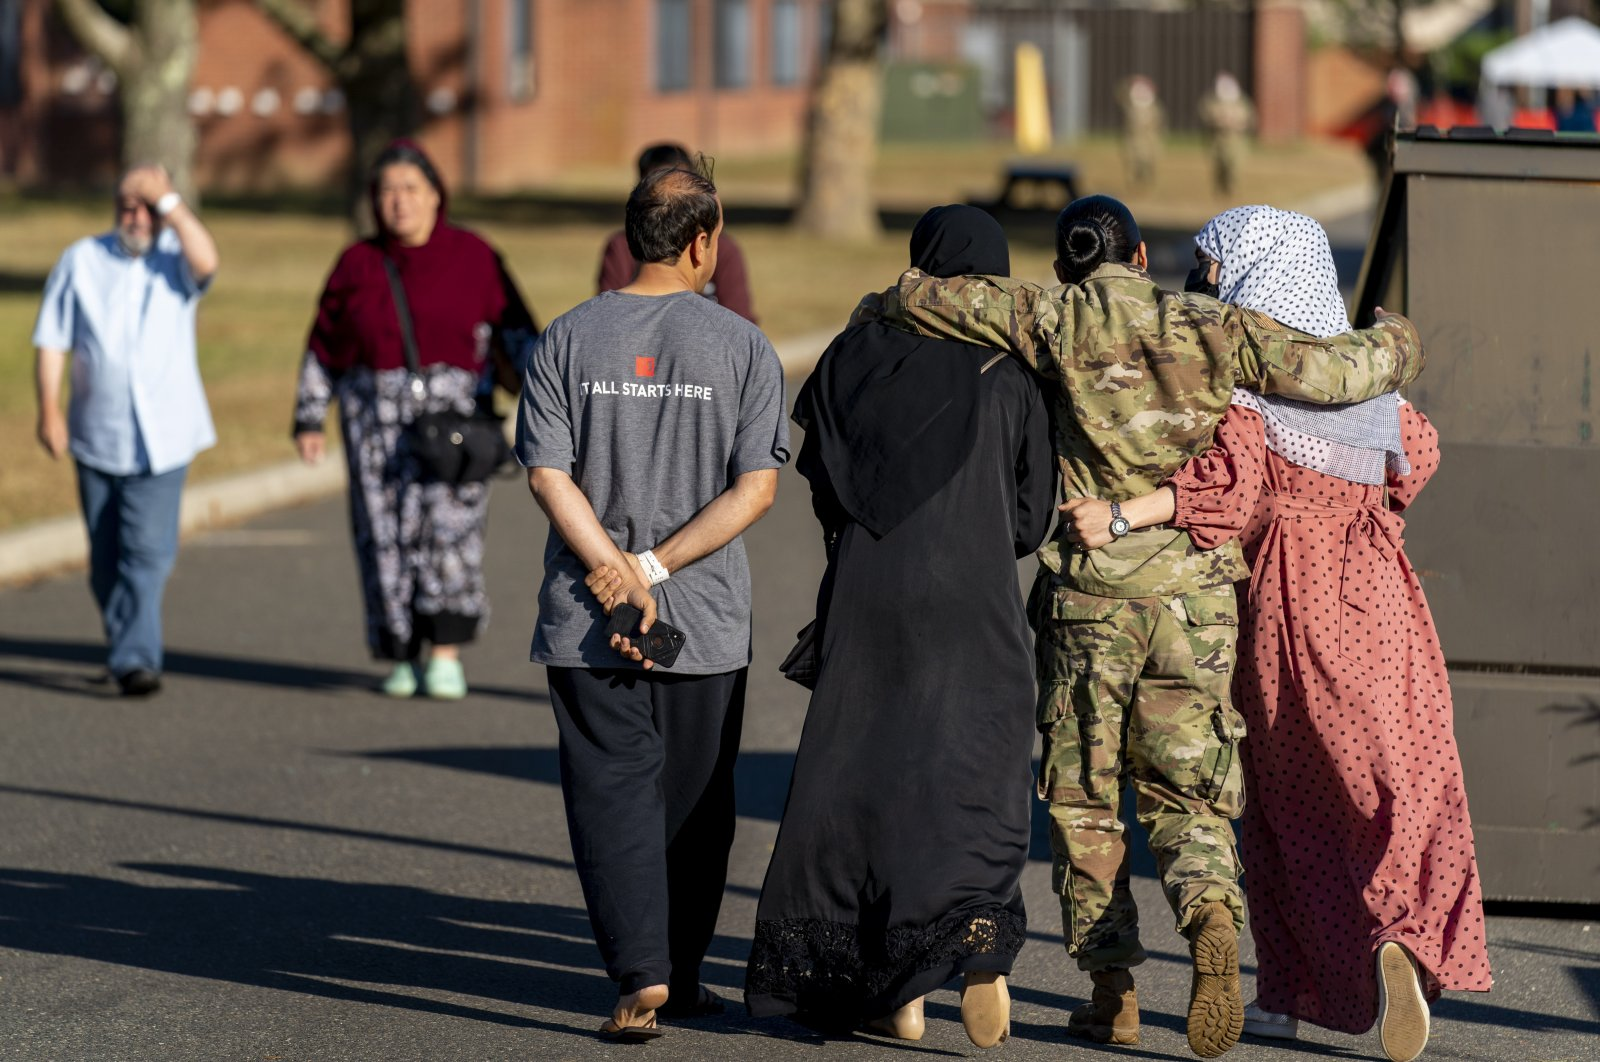 A female member of the U.S. military puts her arms around two female Afghan refugees after they spoke with Secretary of Defense Lloyd Austin as he visits an Afghan refugee camp on Joint Base McGuire Dix Lakehurst, New Jersey, U.S., Sept. 27, 2021. (AP Photo)